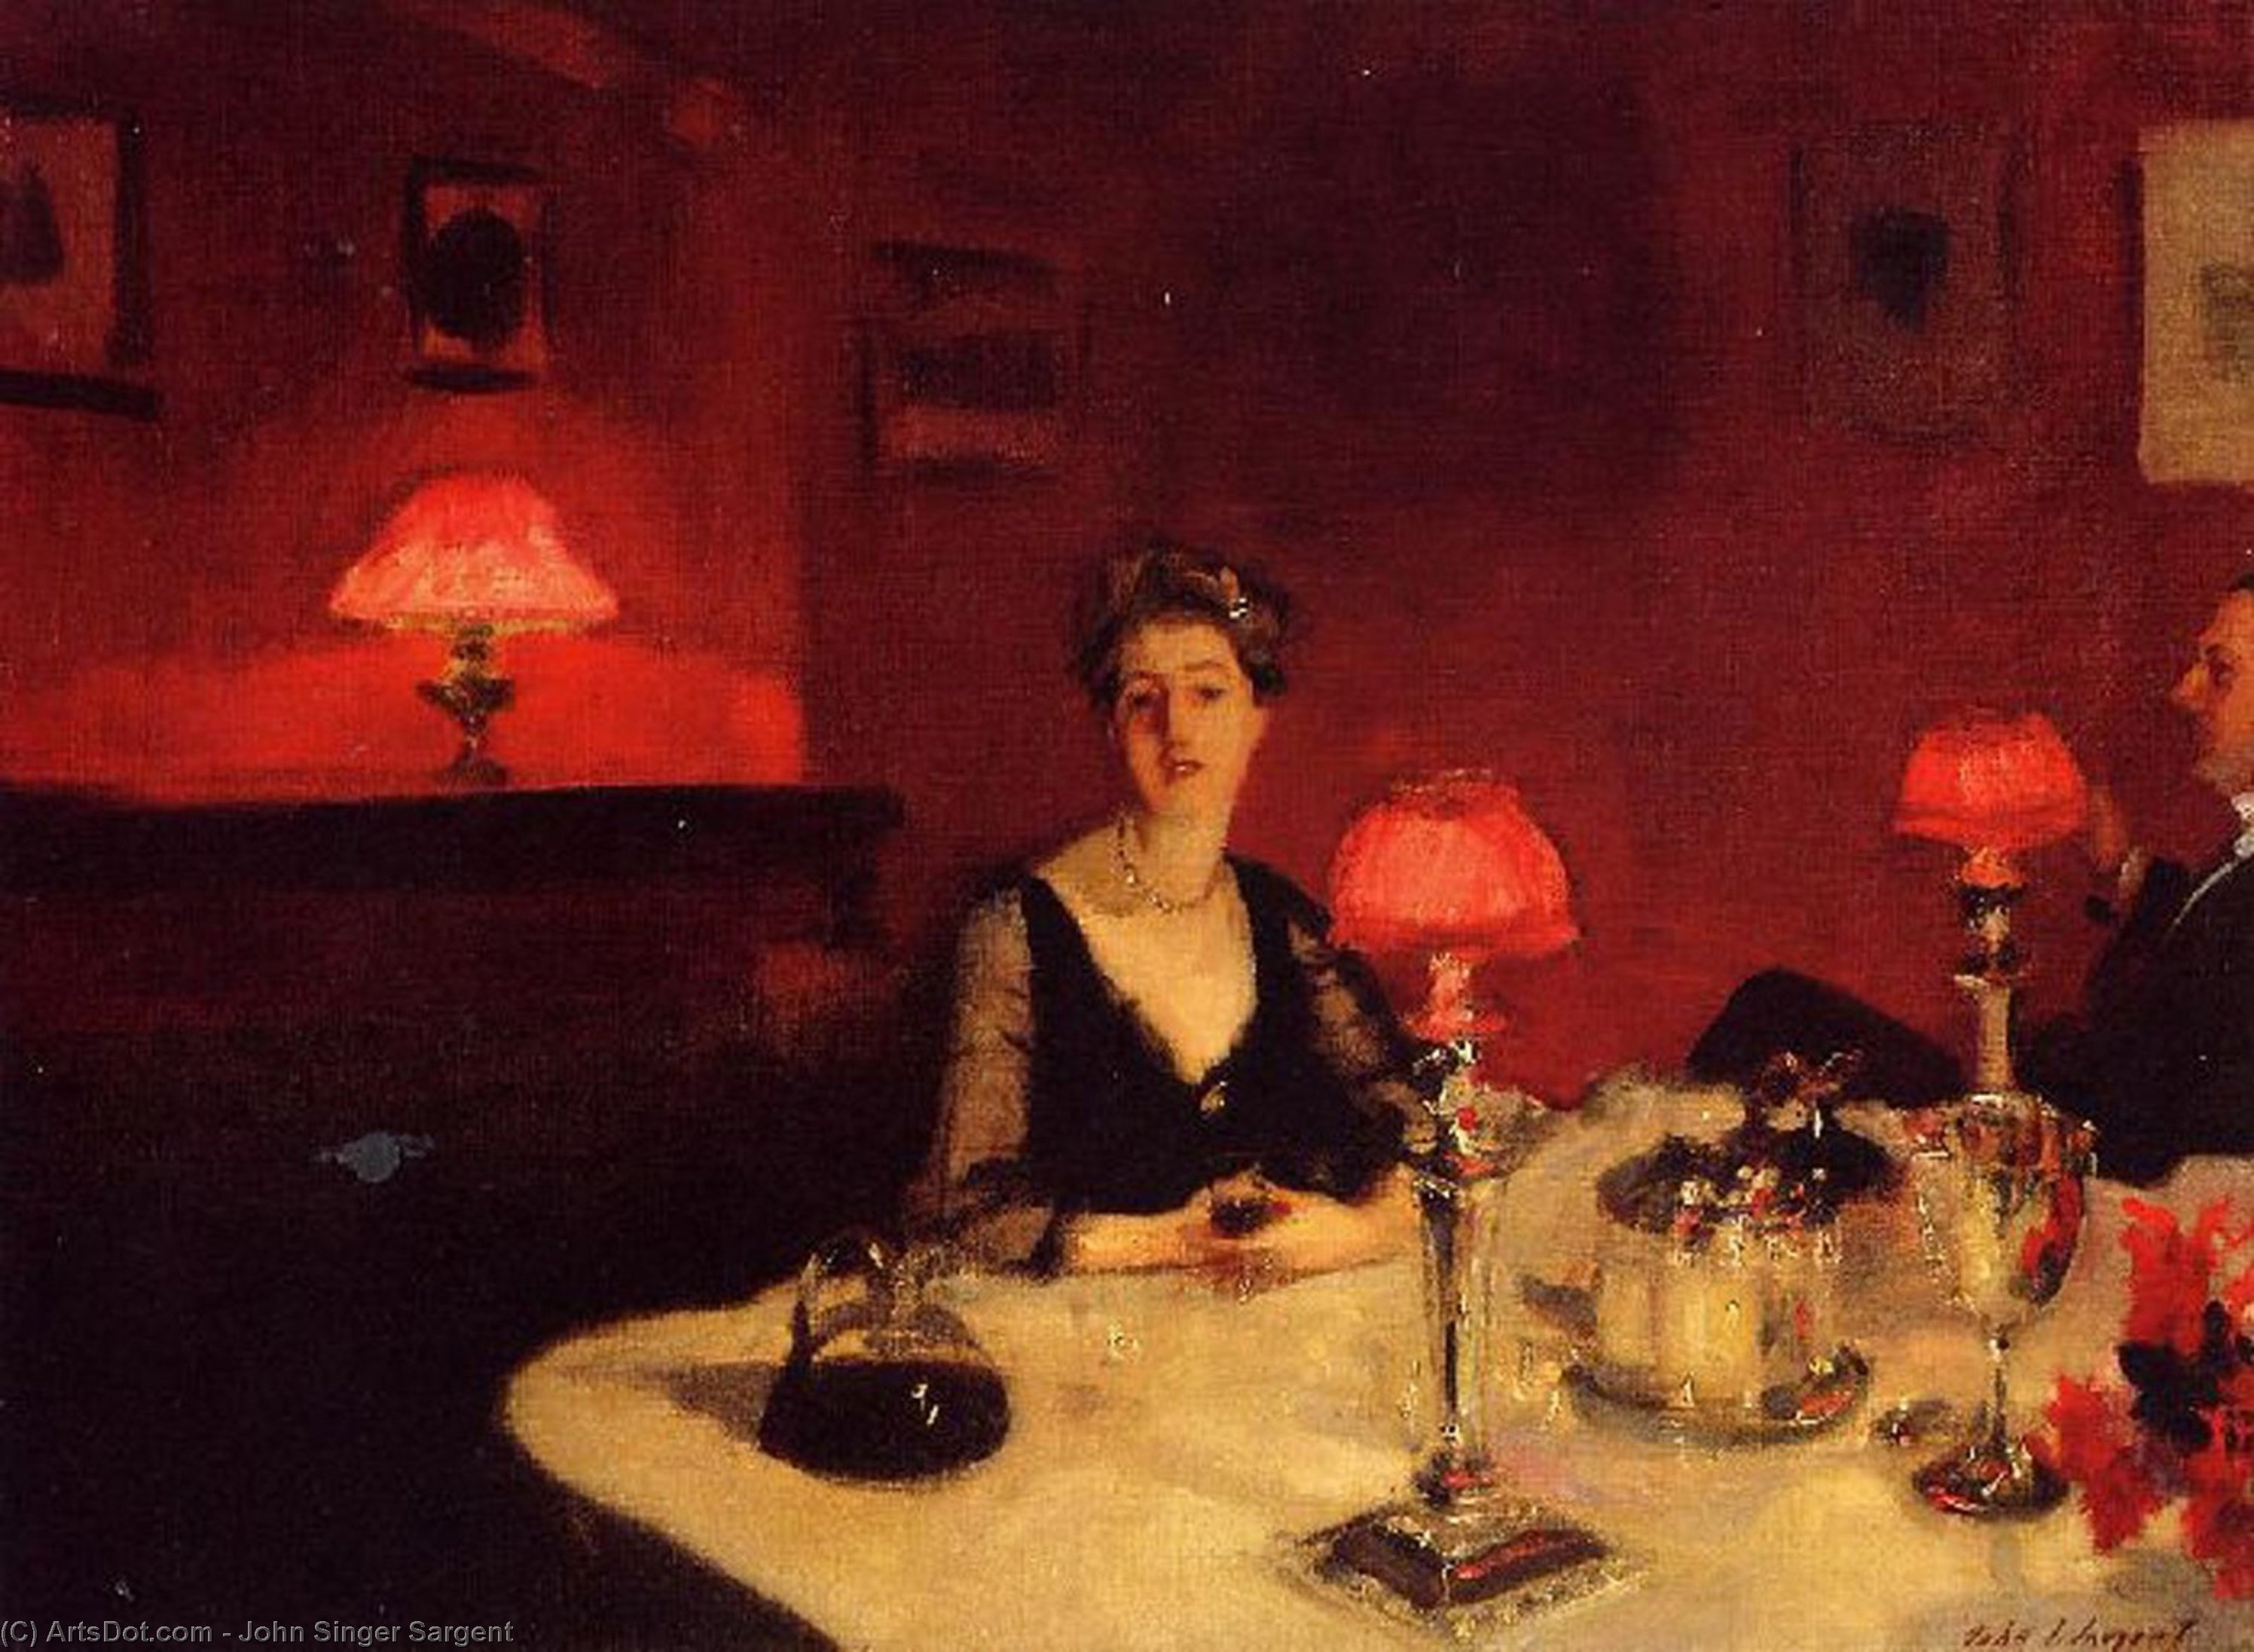 Wikioo.org - The Encyclopedia of Fine Arts - Painting, Artwork by John Singer Sargent - A Dinner Table at Night (also known as Mr. and Mrs. Albert Vickers)